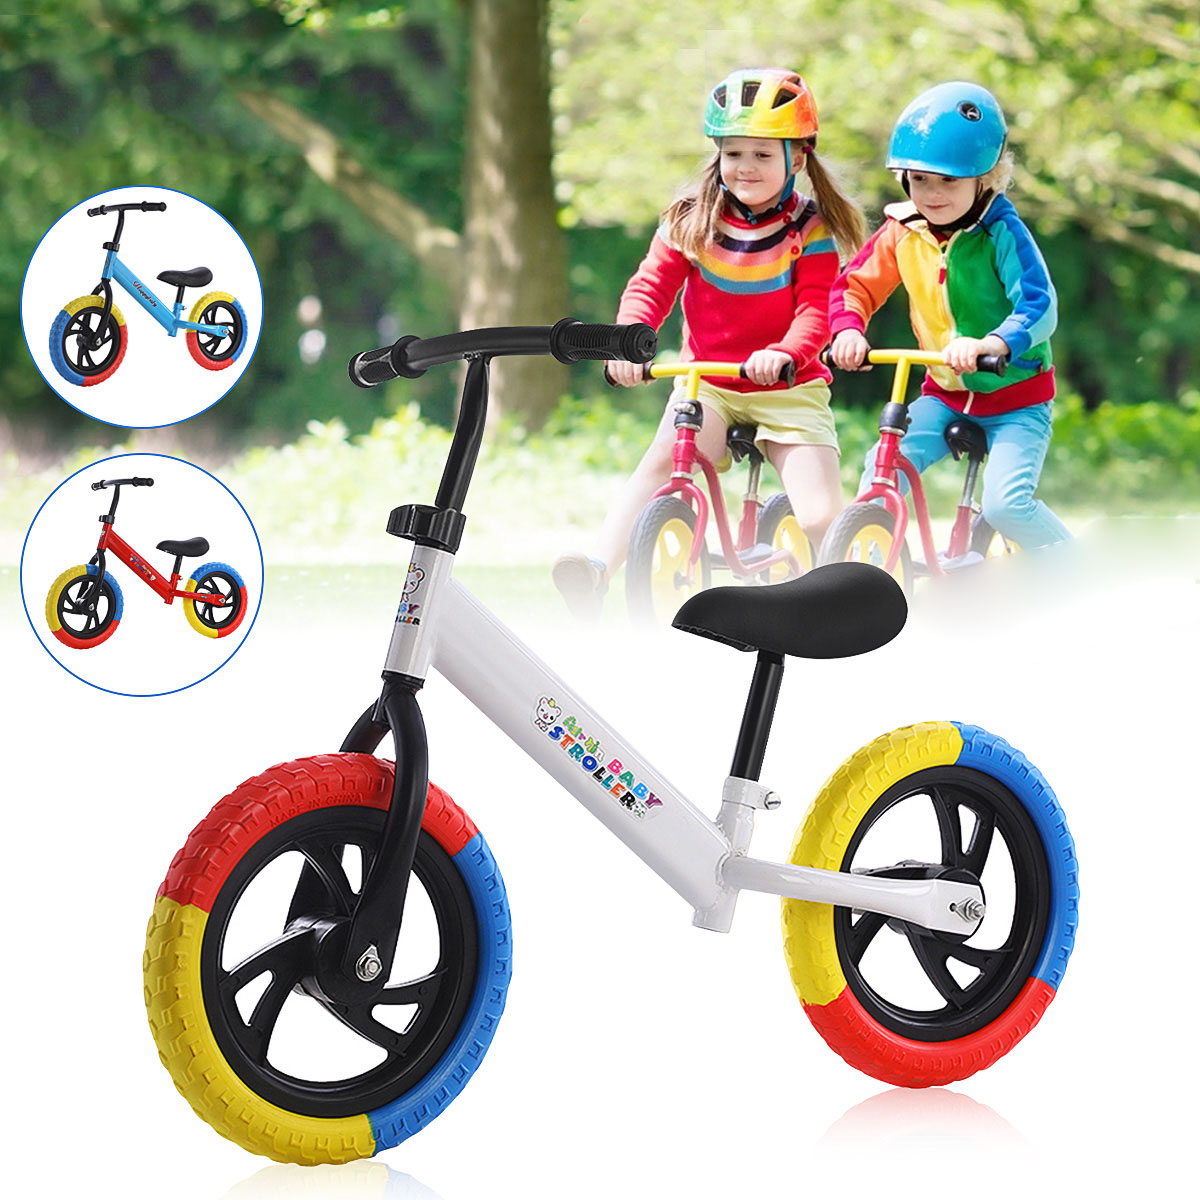 12'' Kids Balance Bike Baby No-Pedal Adjustable Toddler Riding Walking Learning Scooter for 2-7 Years Old